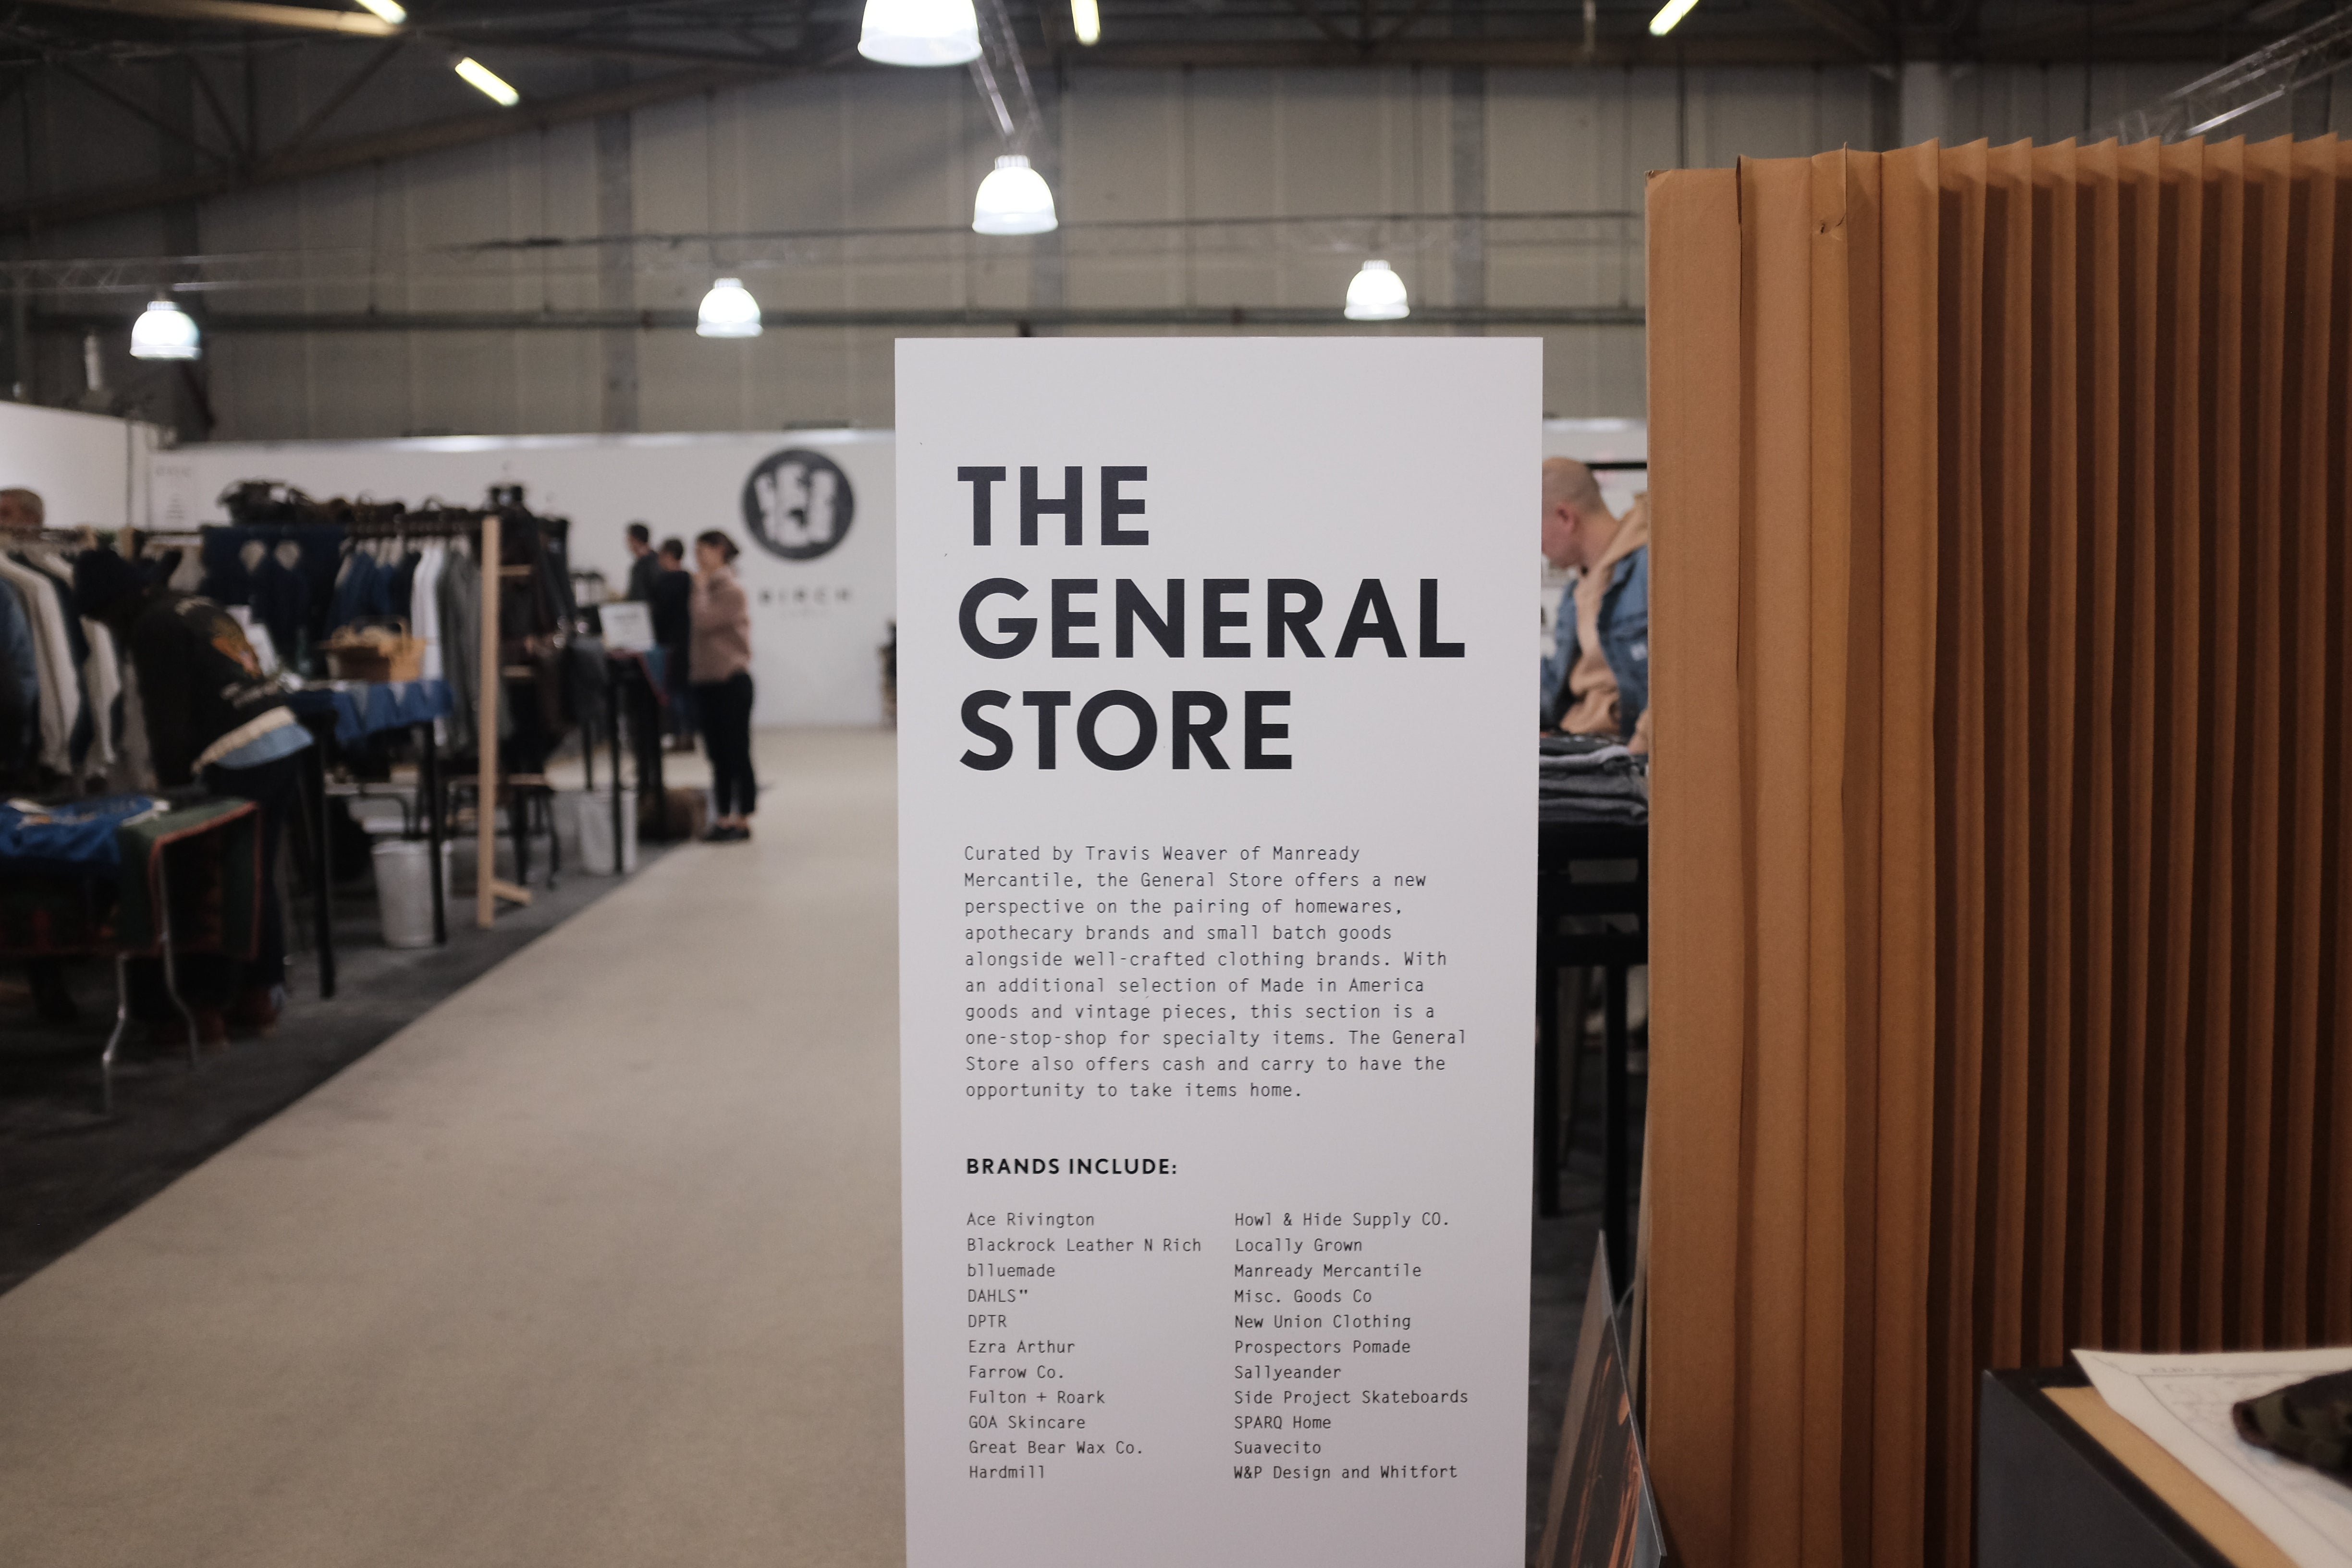 2810db3f2 ... new brands specializing in small batch goods. Everyone was welcoming  and proud to present their work. We would love to join and be a part of it  one day.